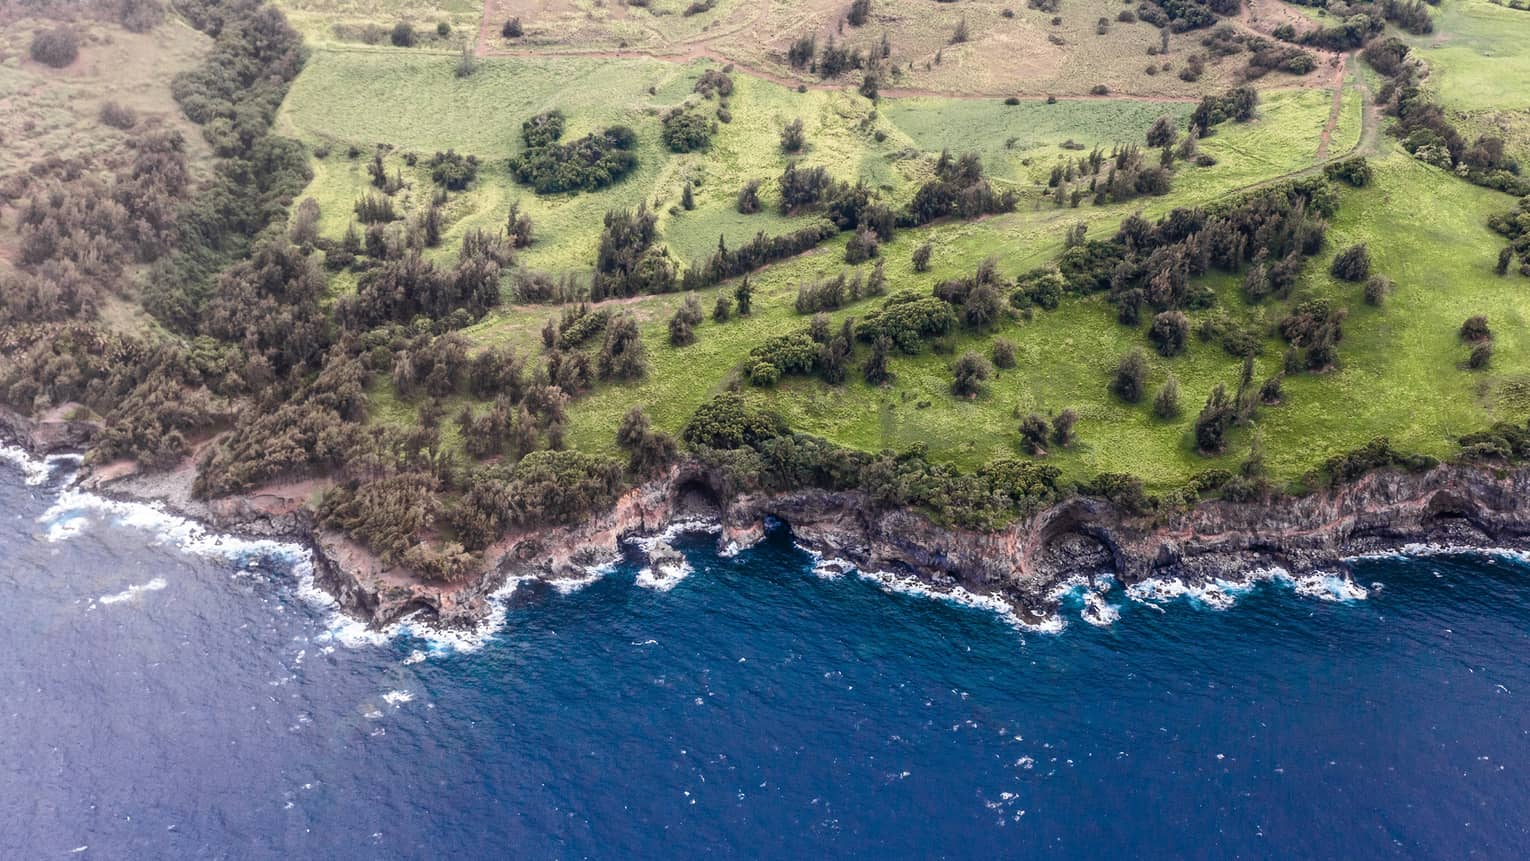 Aerial view of Hualalai, Hawaii rocky shoreline and ocean